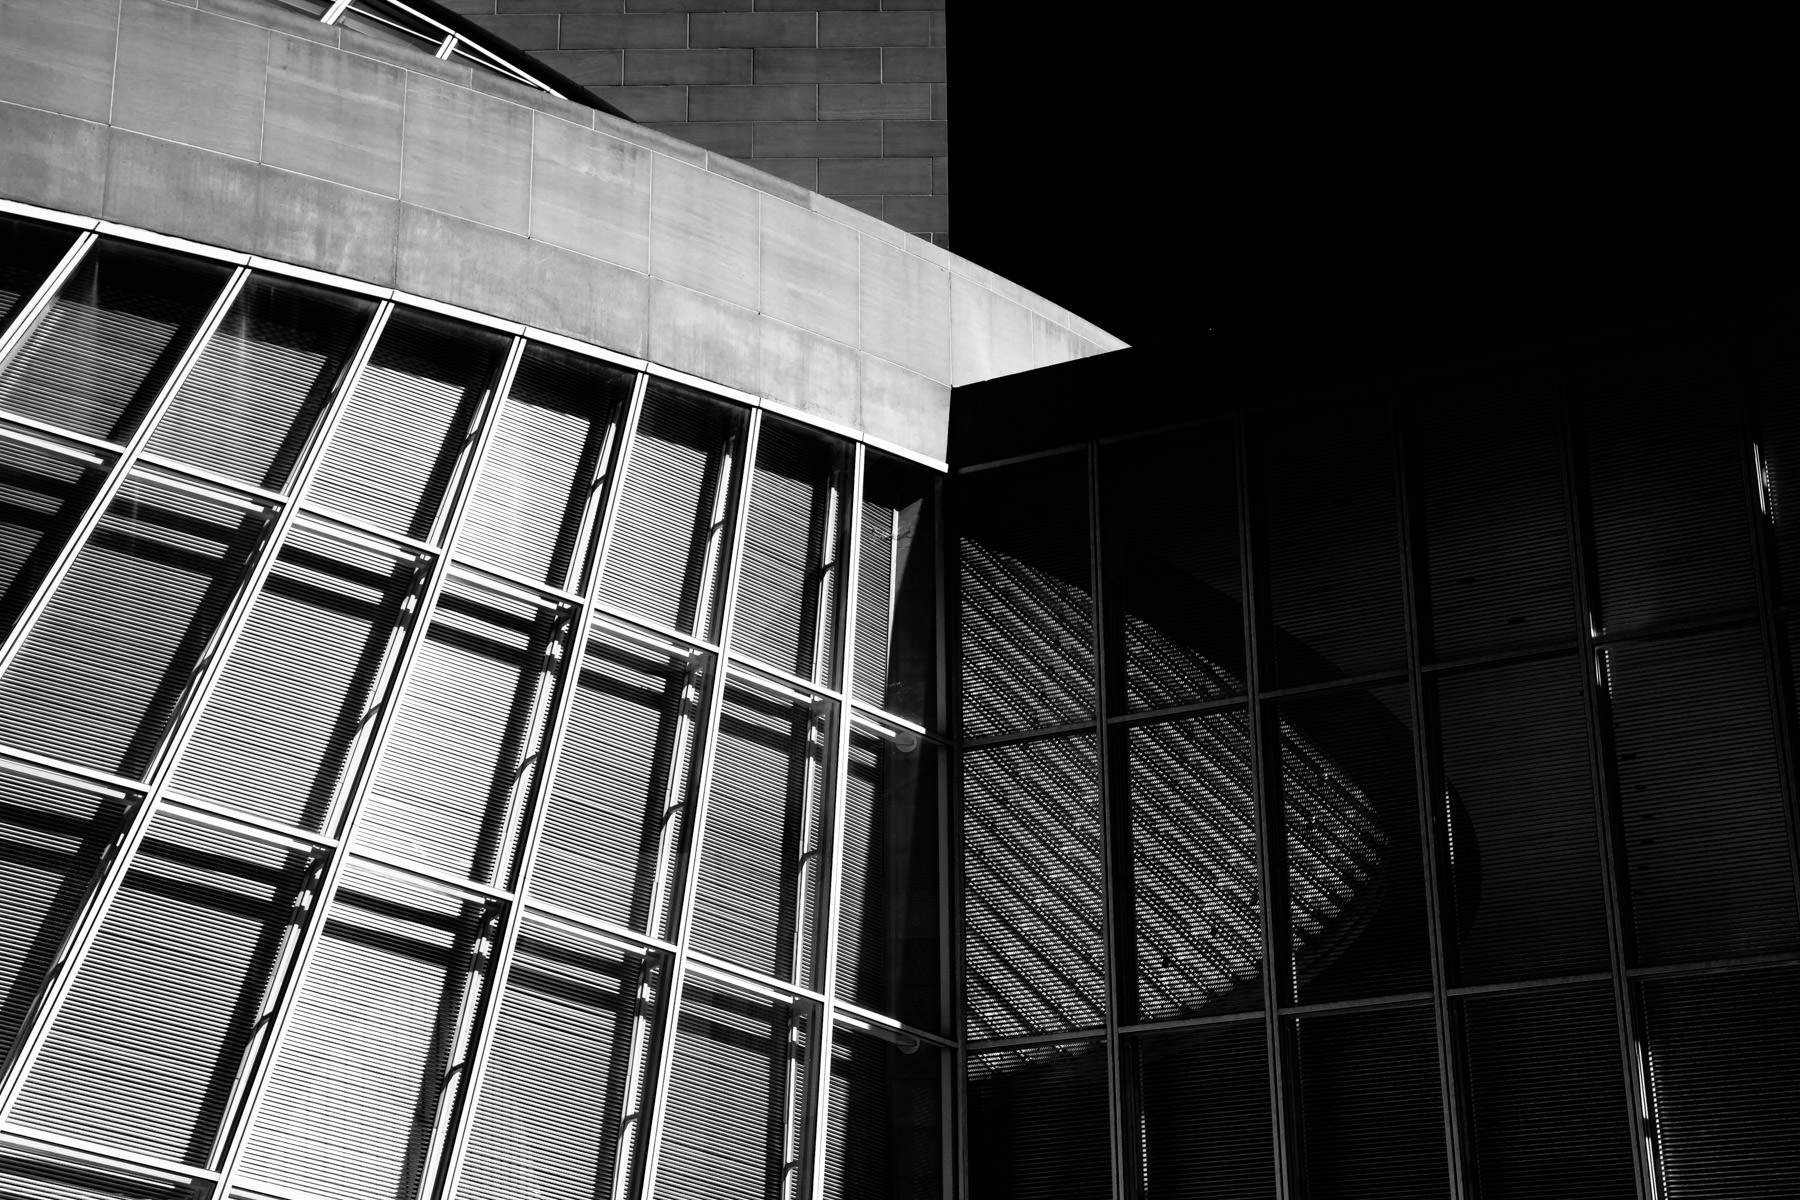 Detail of I.M. Pei's Morton H. Meyerson Symphony Center, Dallas.